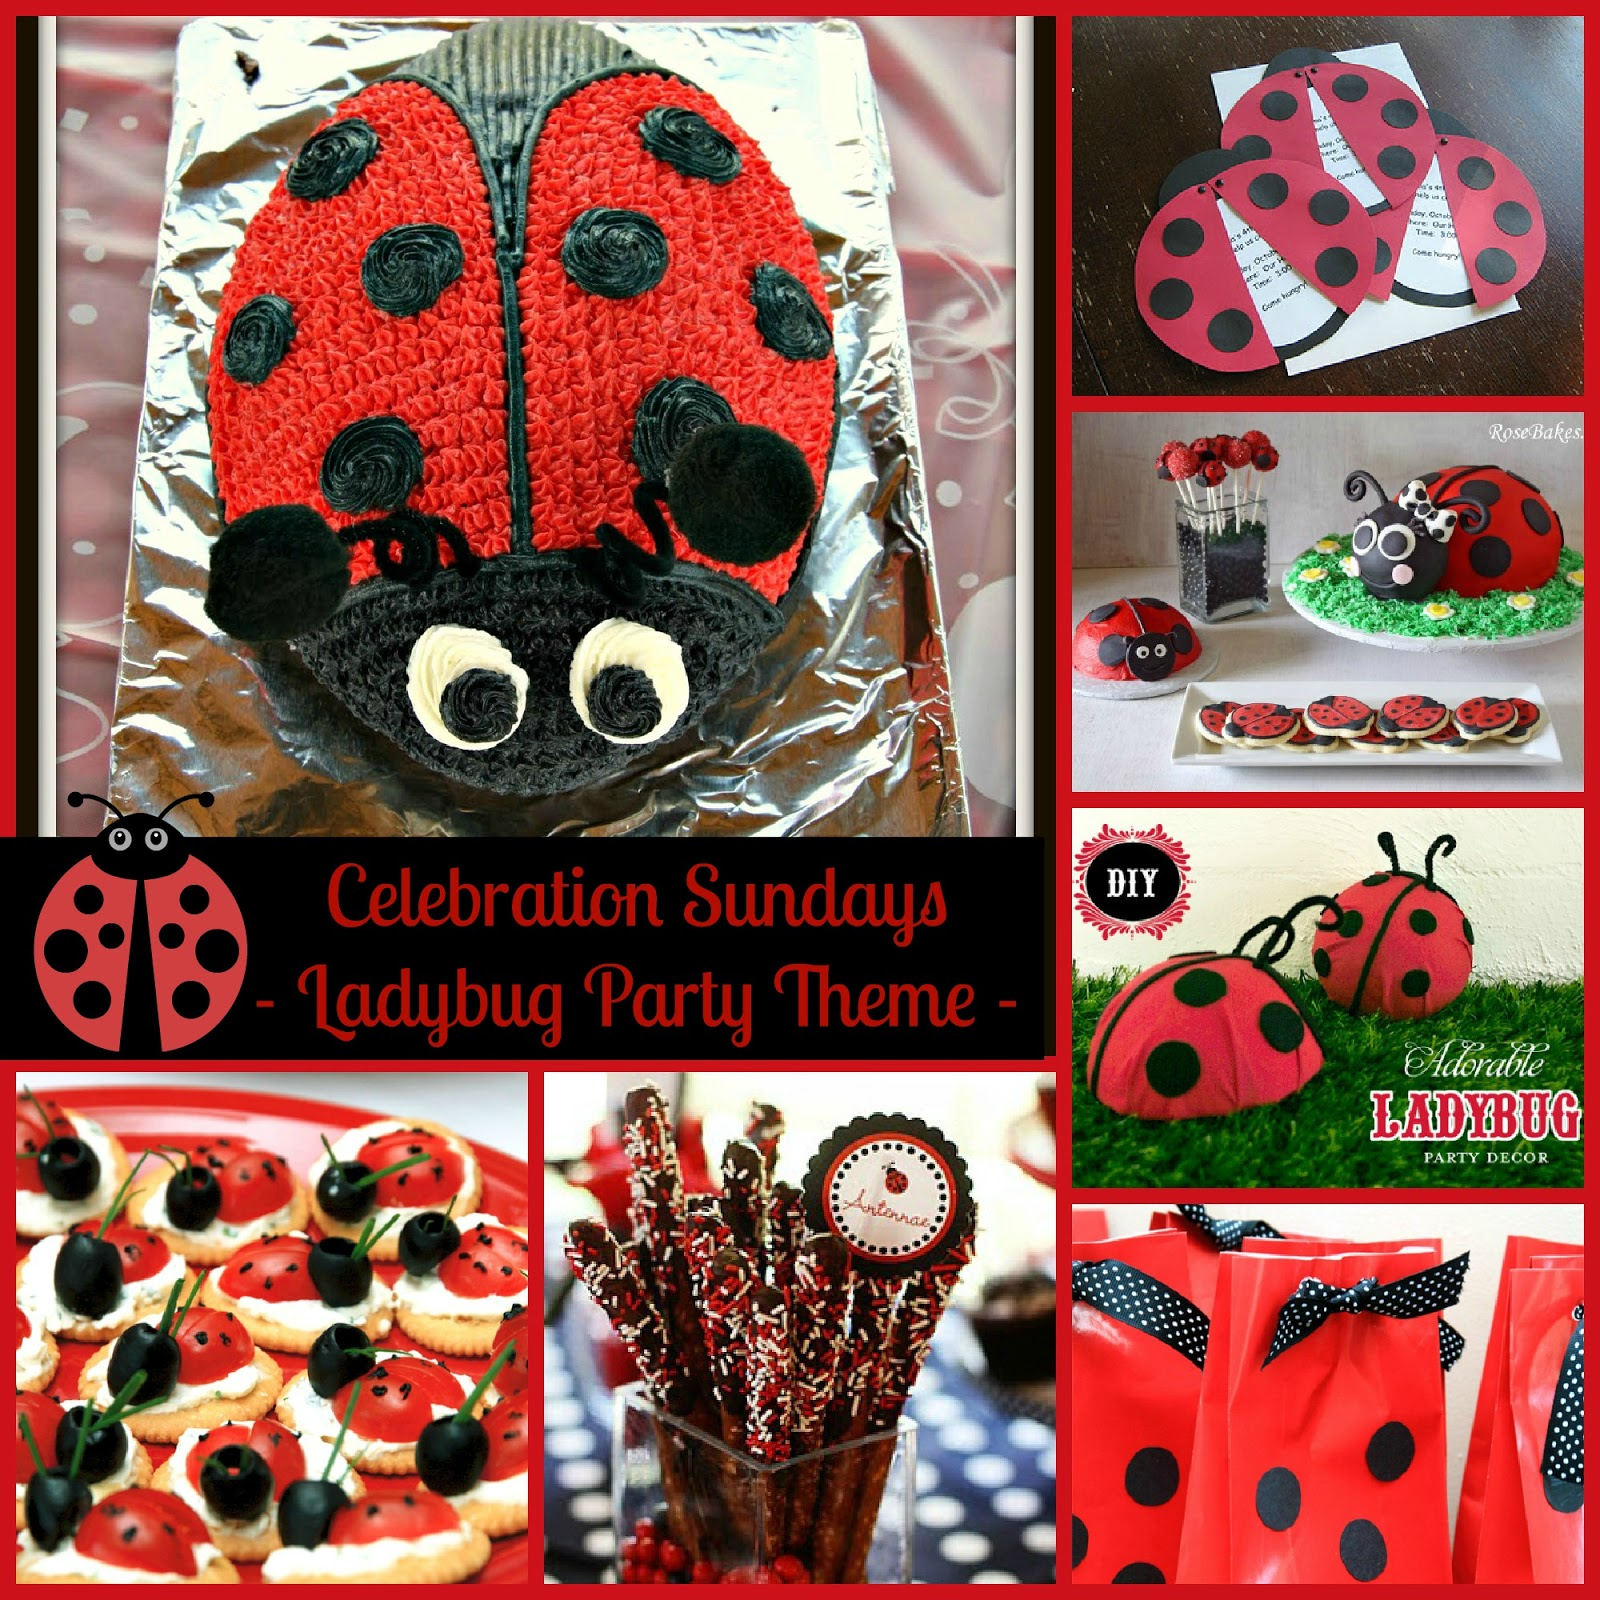 The mandatory mooch celebration sundays ladybug party theme celebration sundays ladybug party theme solutioingenieria Choice Image